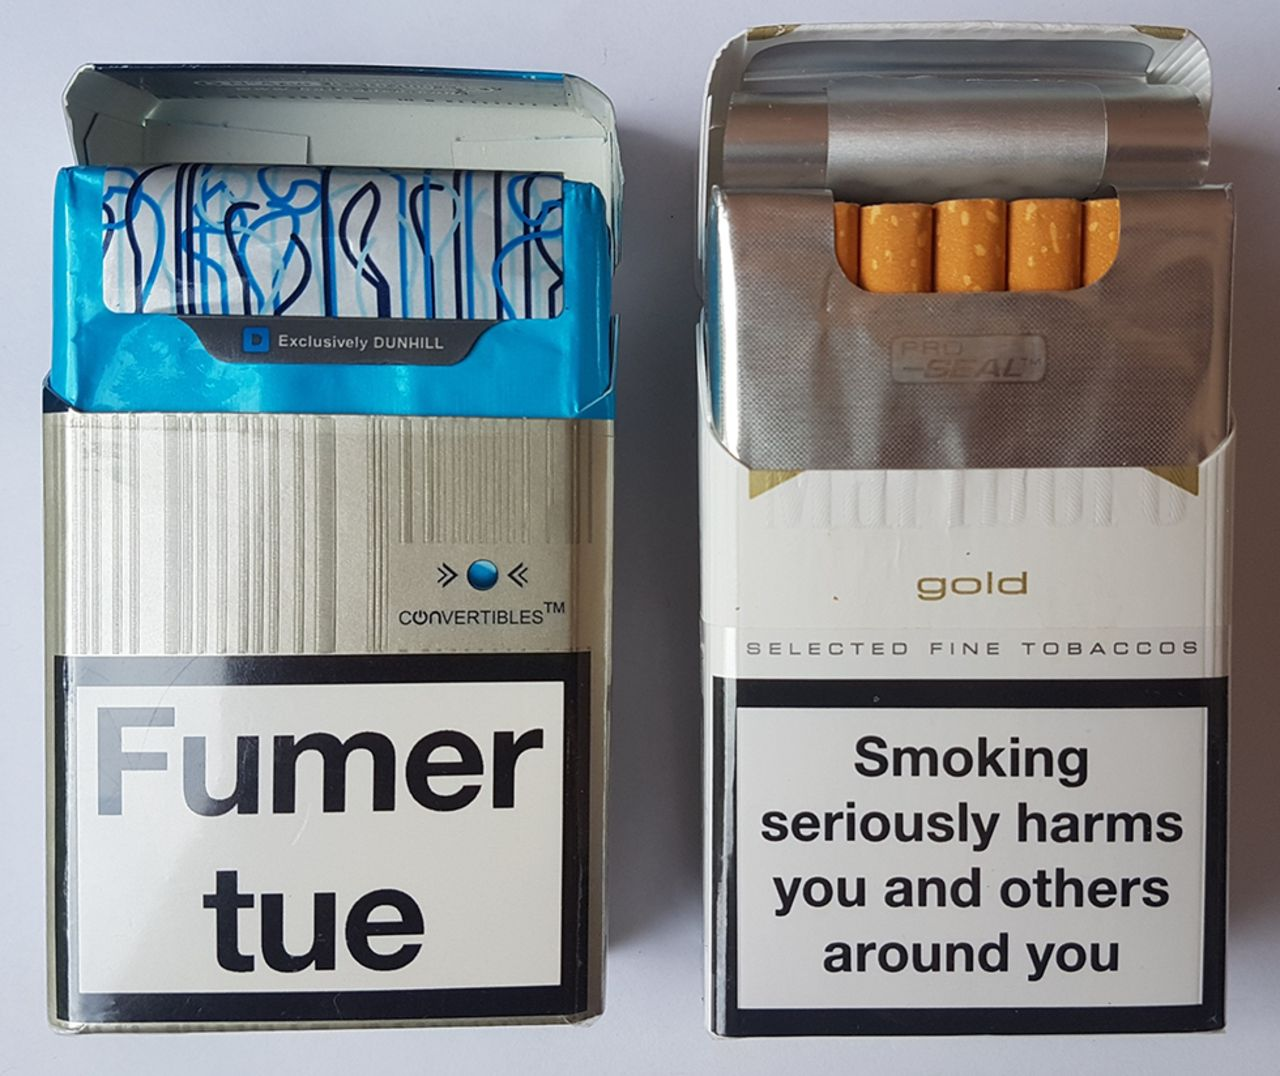 How tobacco companies in the UK prepared for and responded to